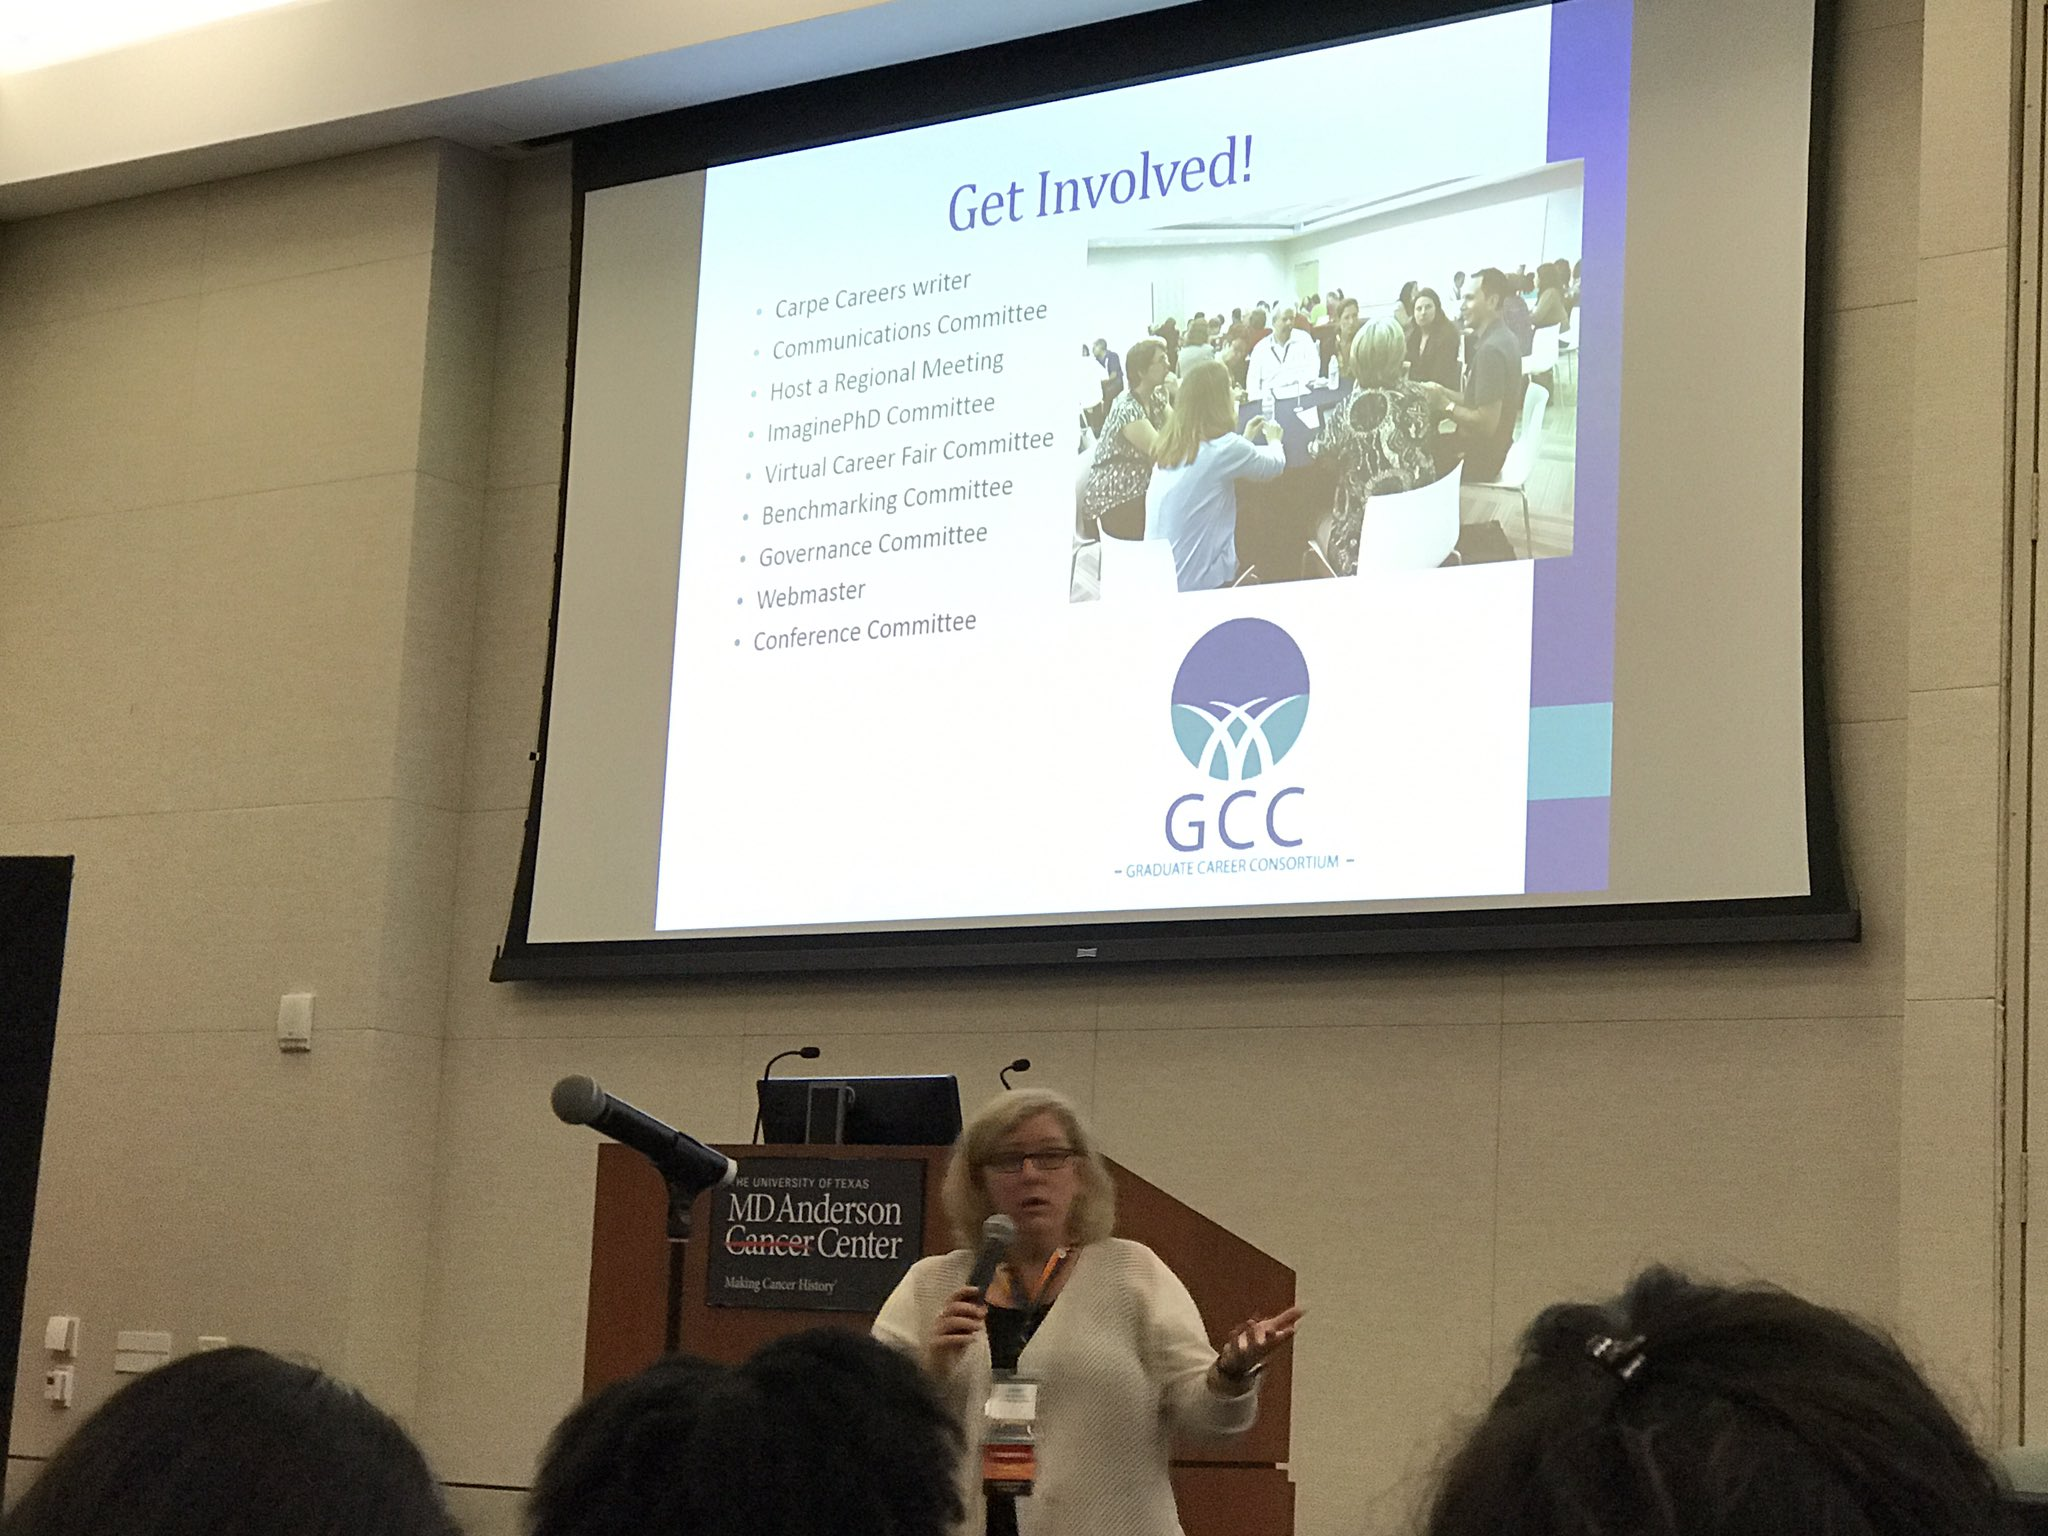 Opening remarks from @Grad_Careers leadership at #2017GCC #GRADprofdev https://t.co/L2uGVwXck5